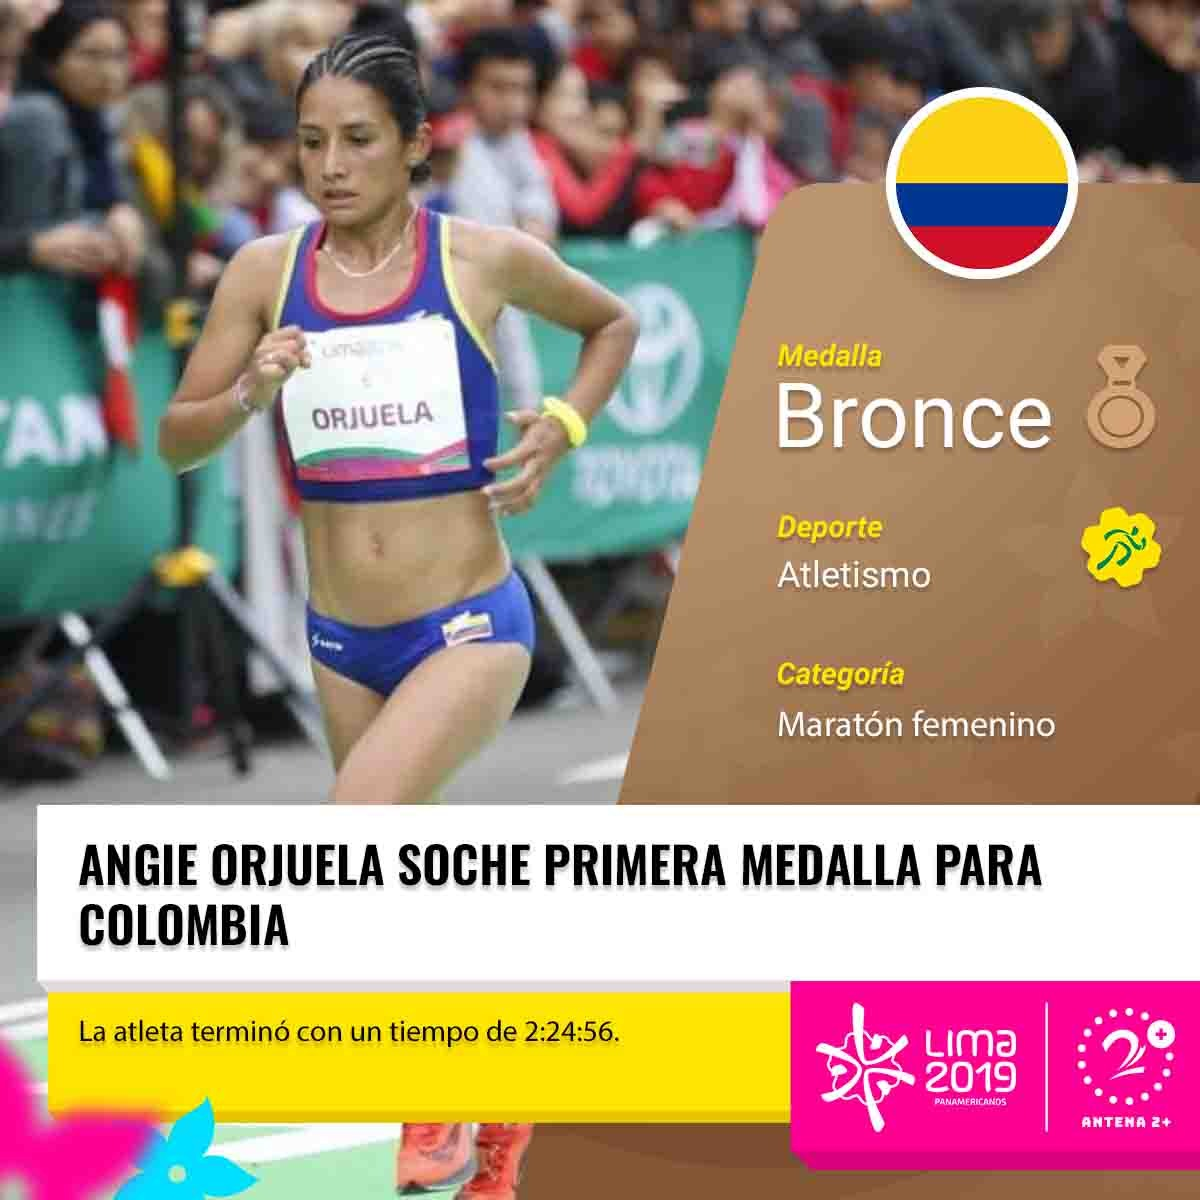 Angie Orjuela, medalla de bronce para Colombia